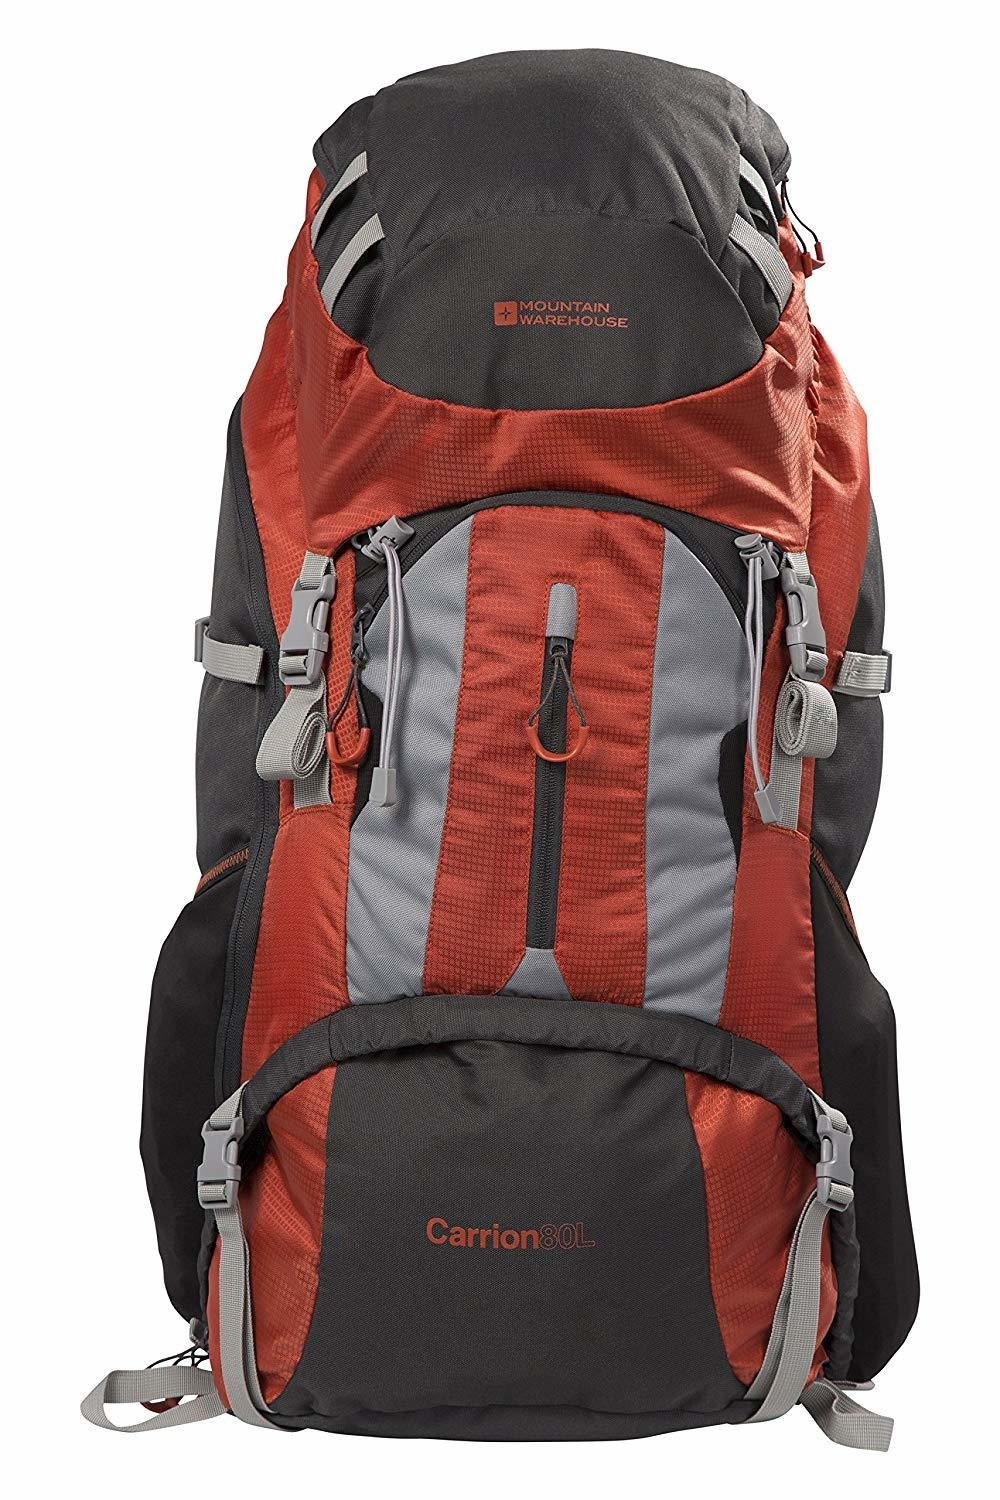 Carrion 80L Backpack - Adjustable Torso